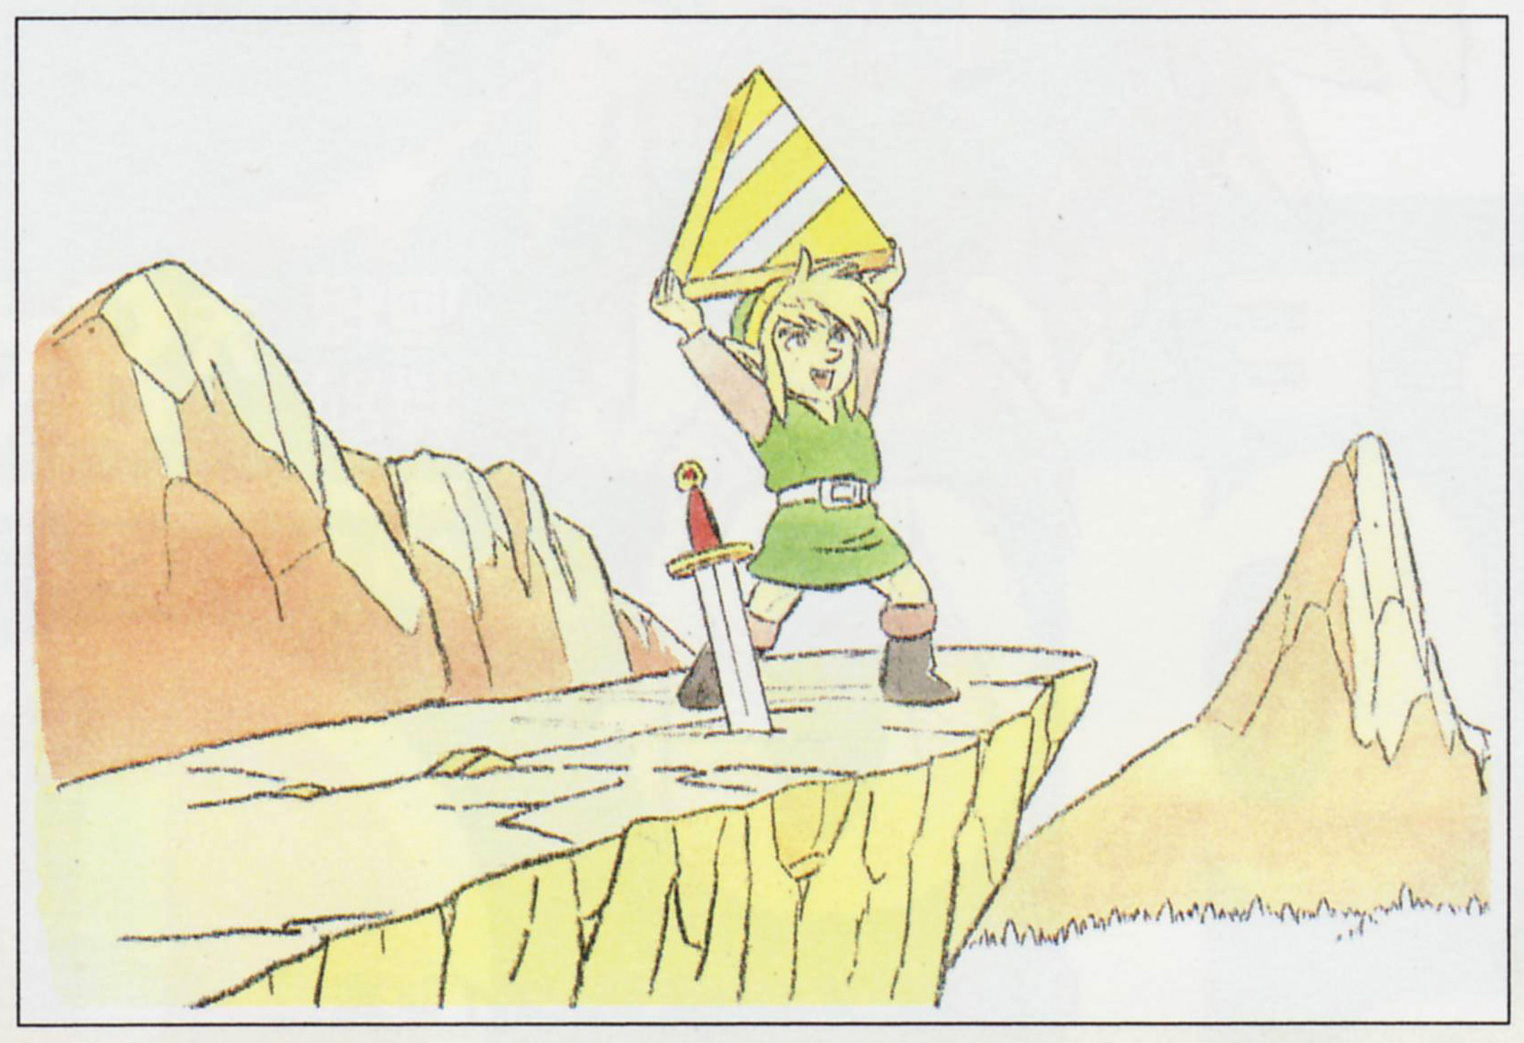 LoZ Triforce of Wisdom